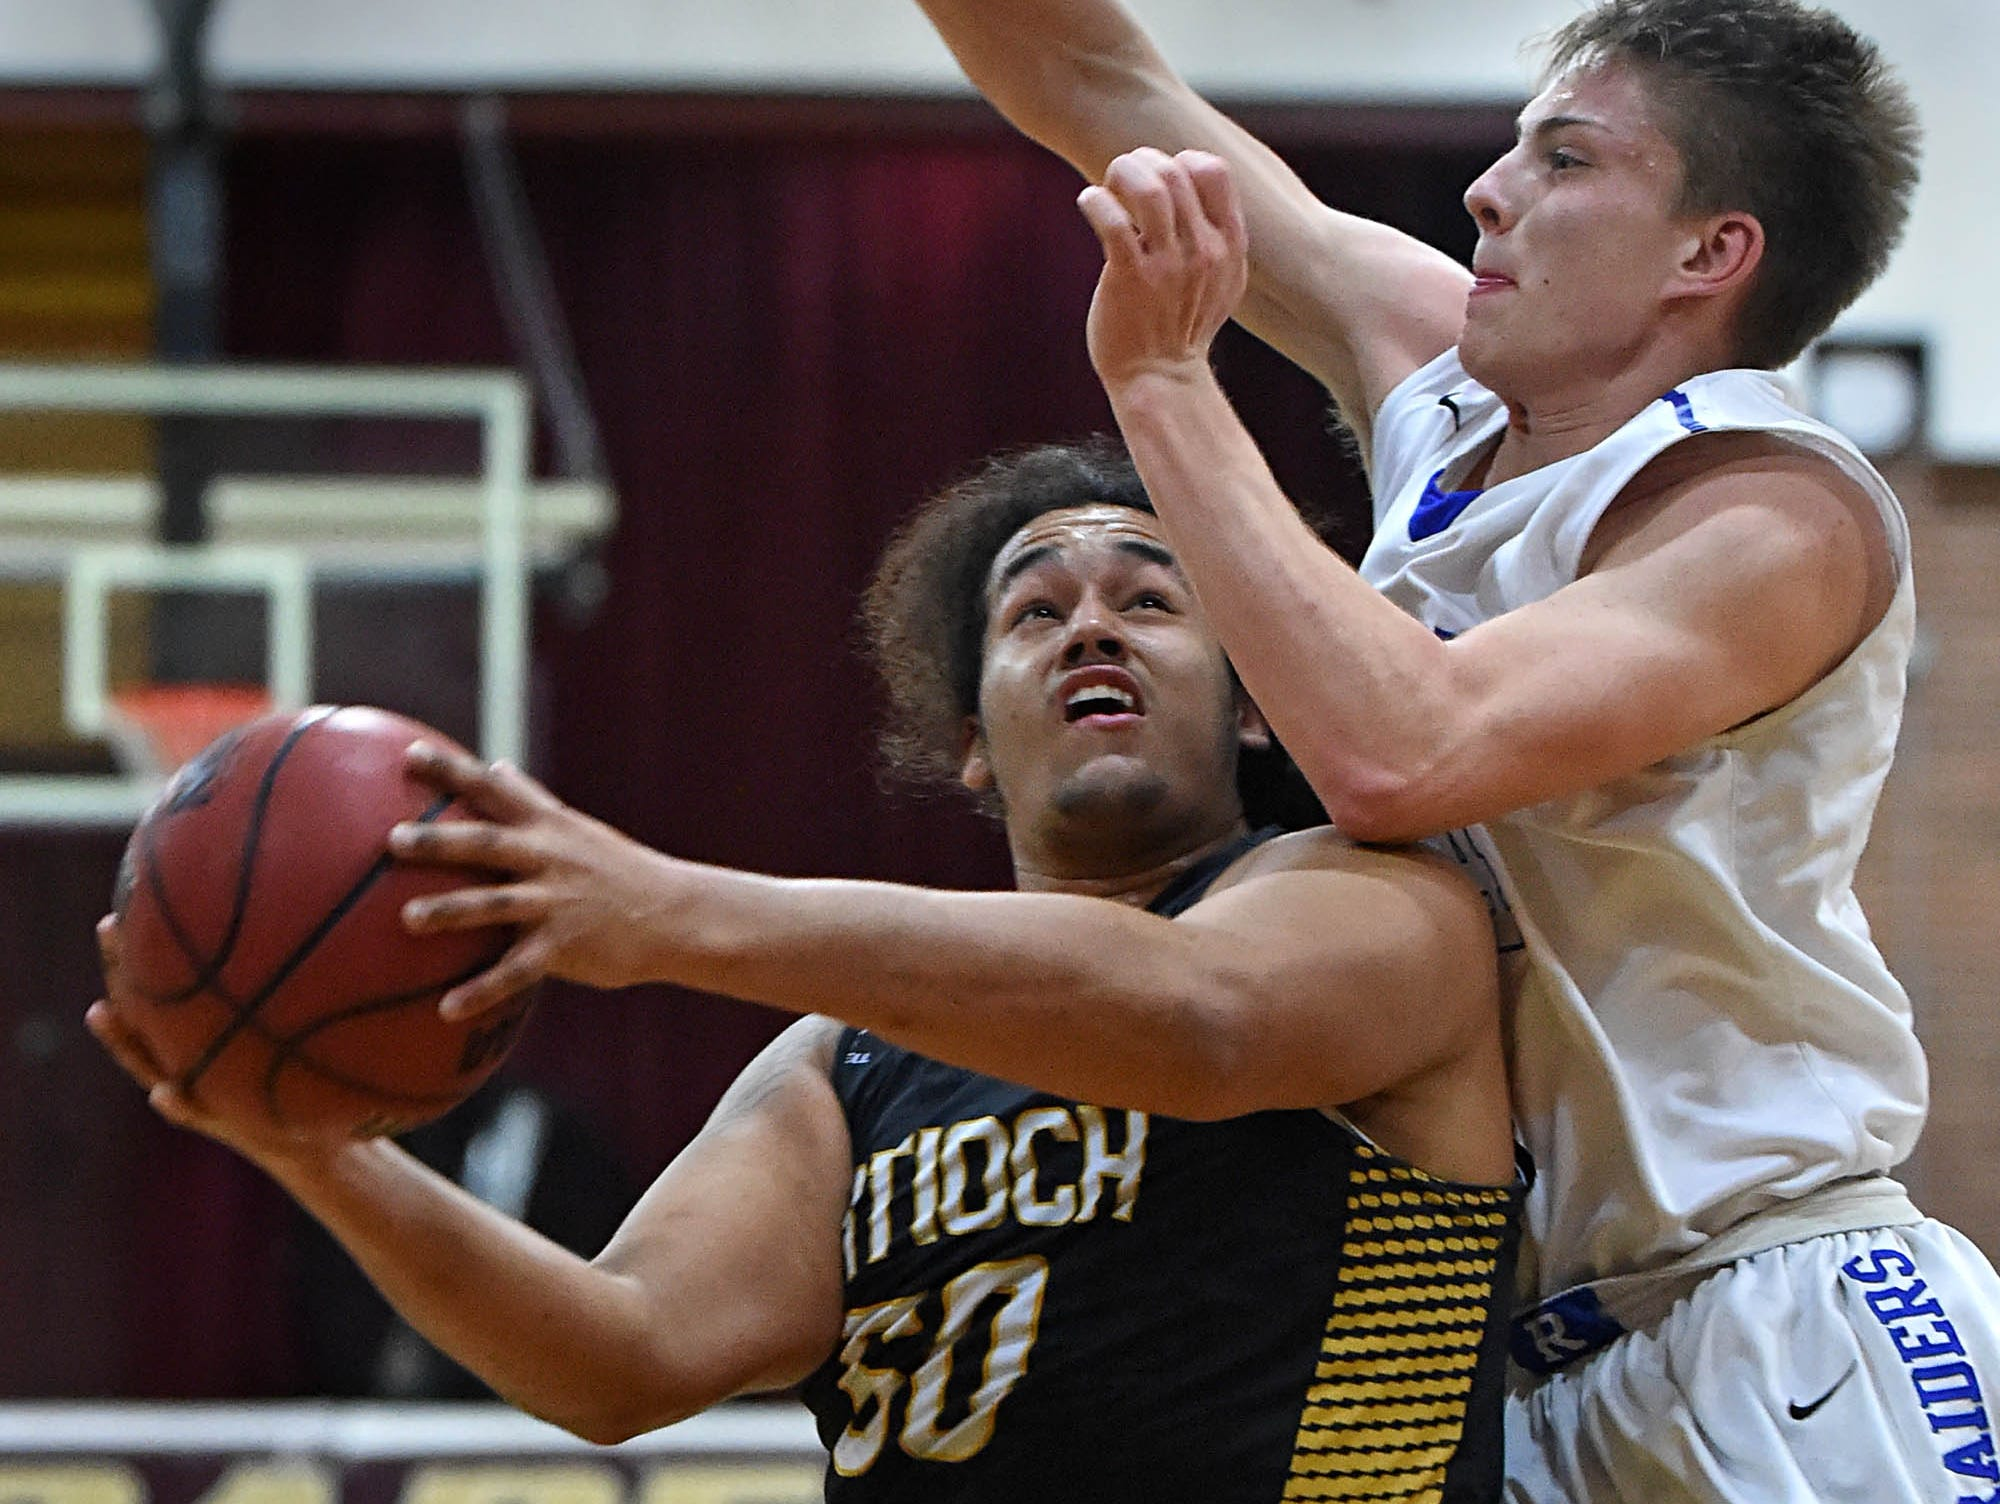 Reed's Grant Cotter looks to block a shot by Anitoch's Sir Forbes during the Rail City Classic Basketball Tournament at Sparks High School on Tuesday/.